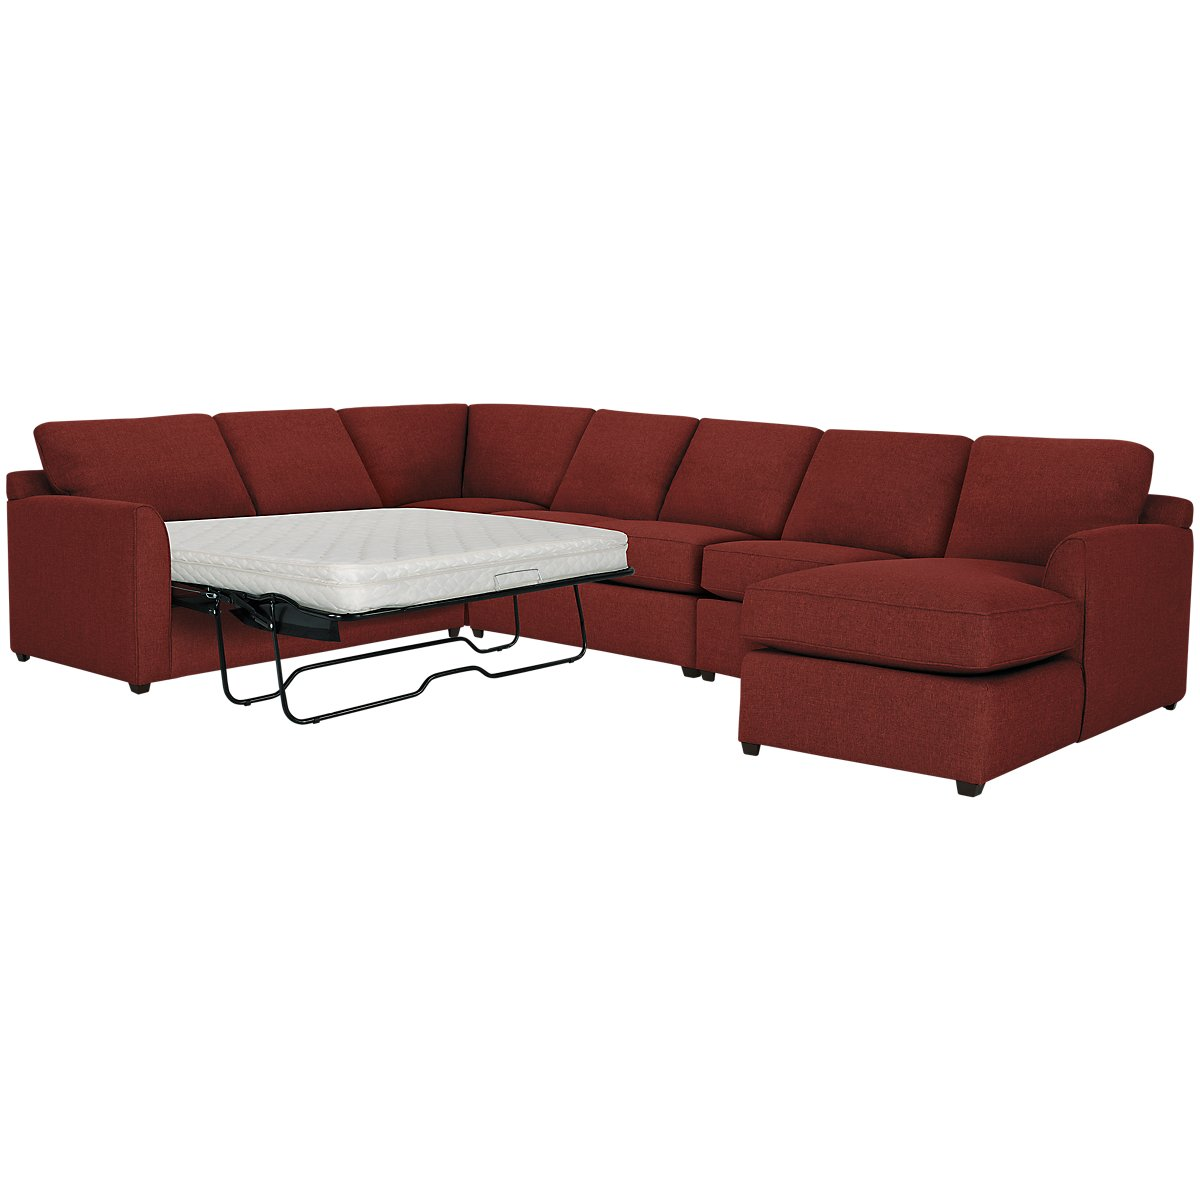 City Furniture Asheville Red Fabric Right Chaise